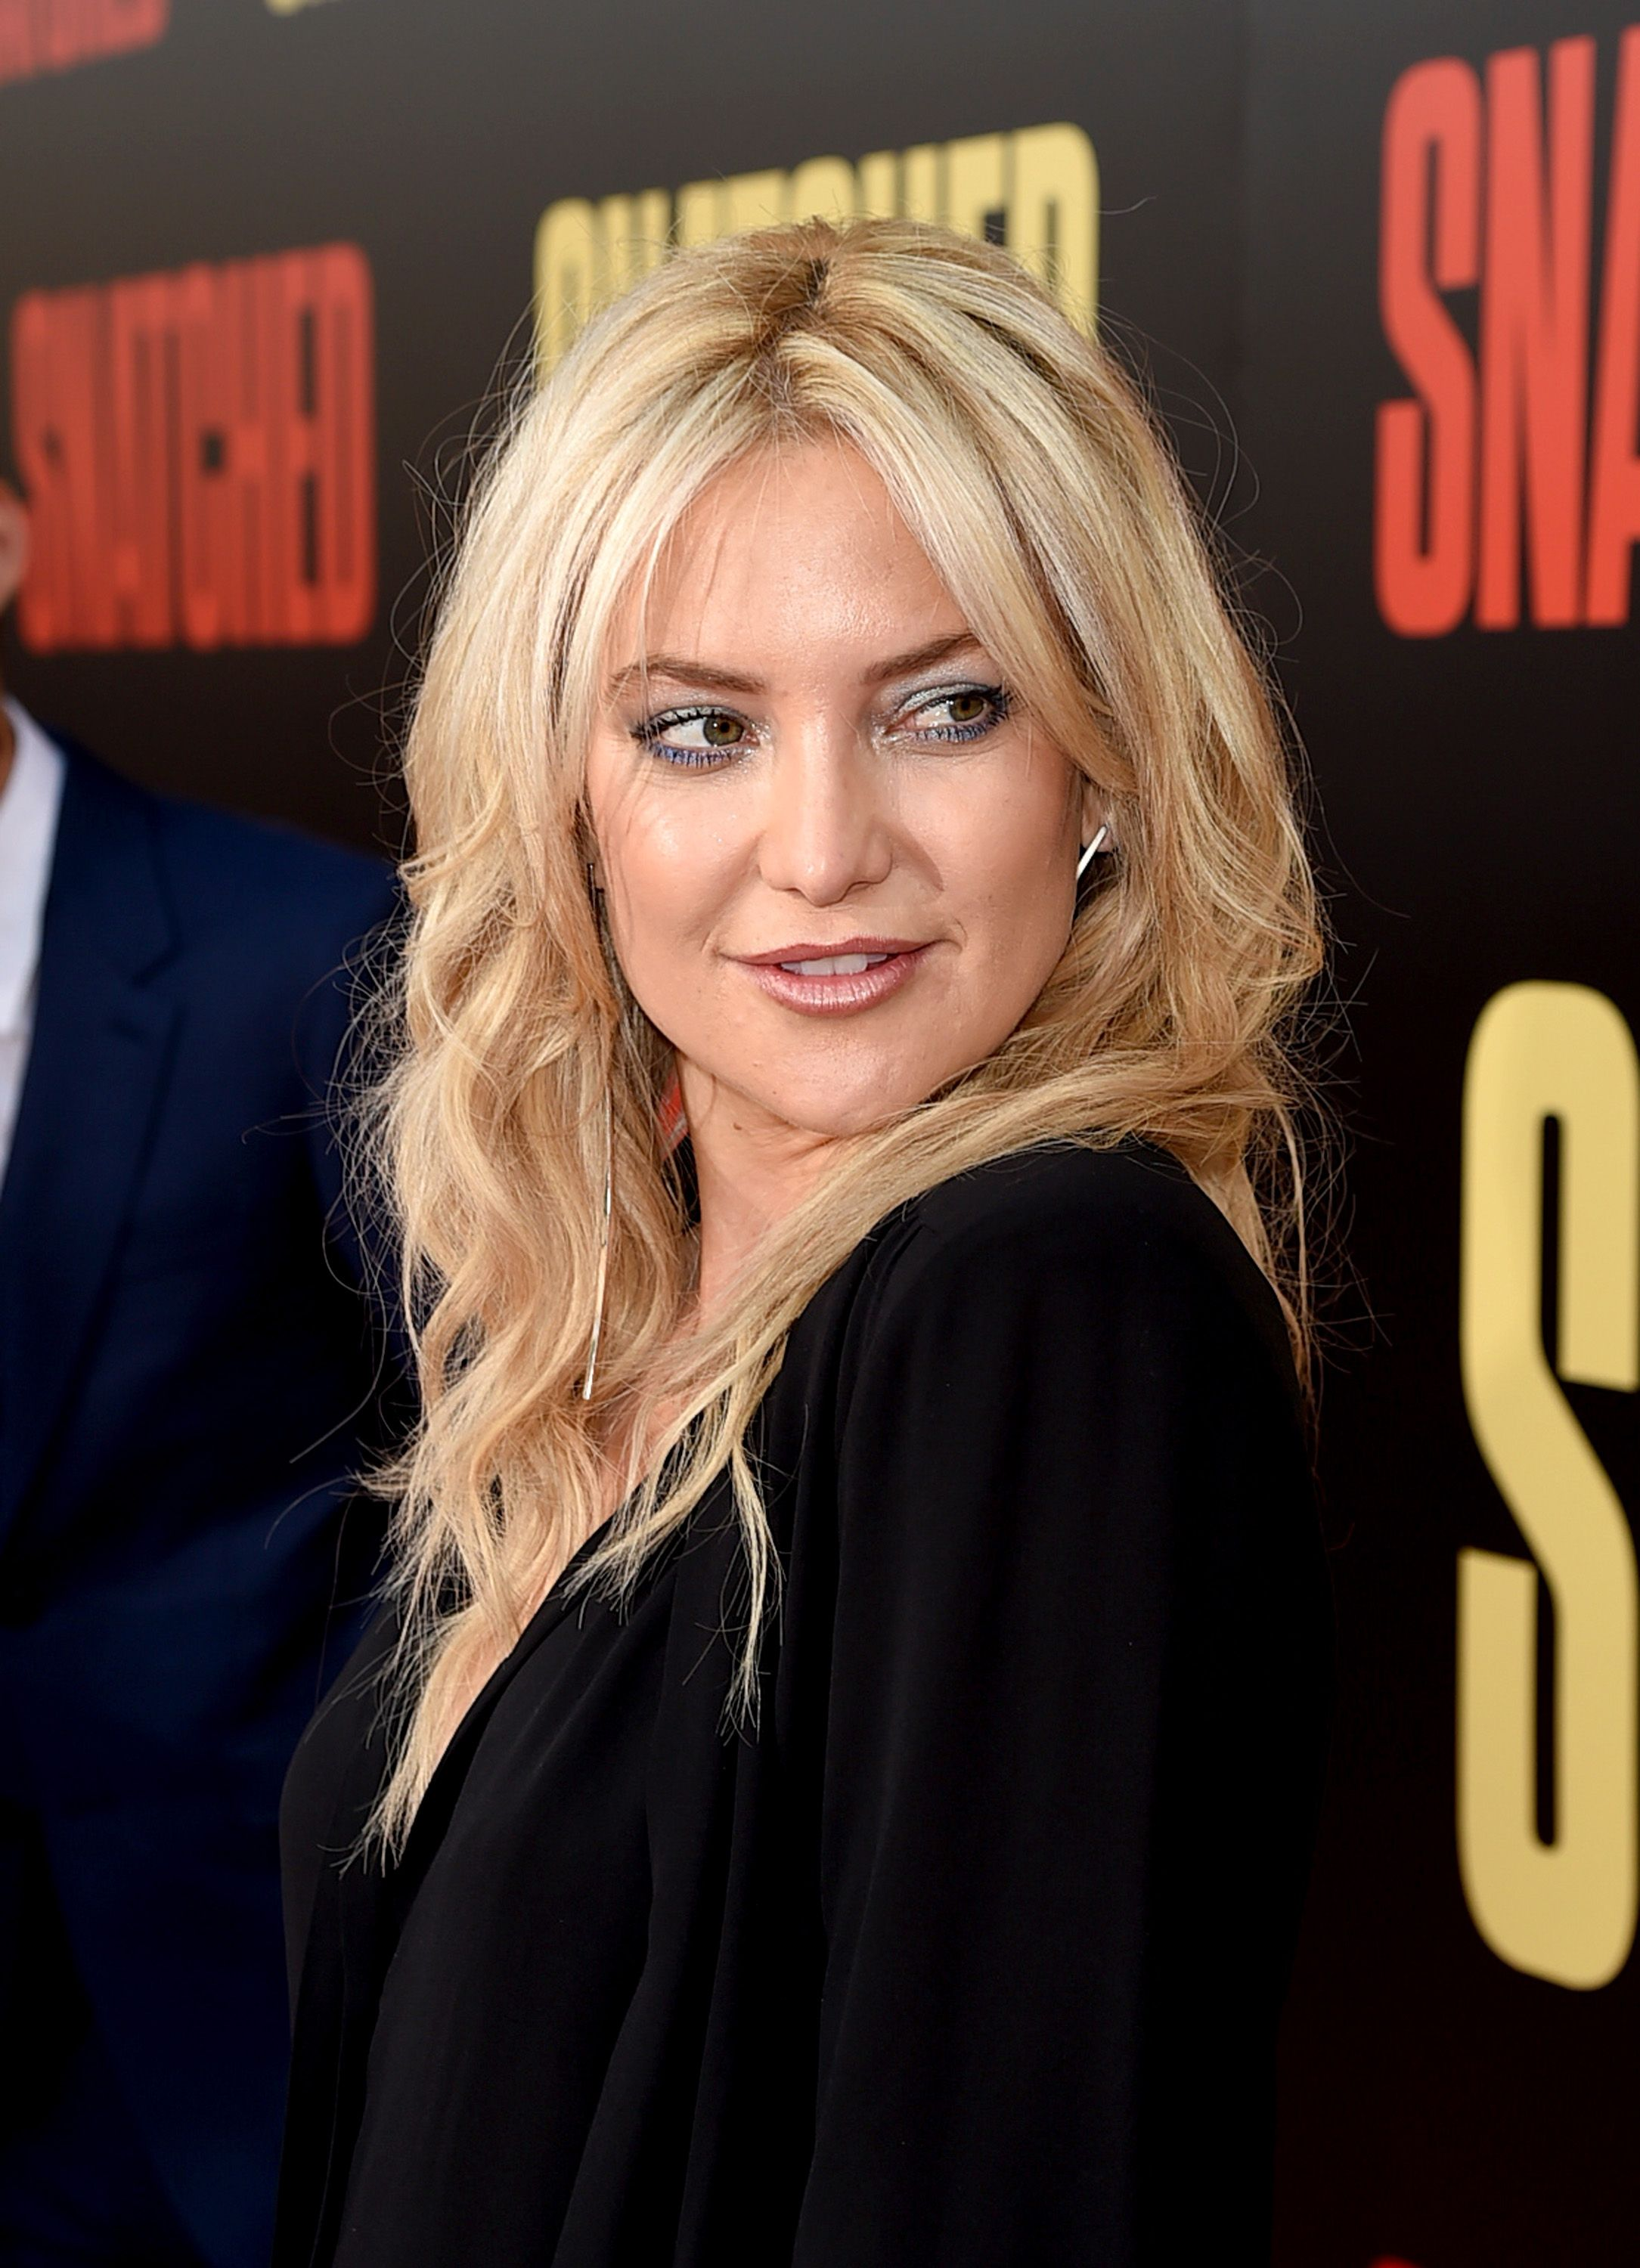 """Kate Hudson arrives at the premiere of 20th Century Fox's """"Snatched"""" at the Village Theatre on May 10, 2017 in Los Angeles, California. 